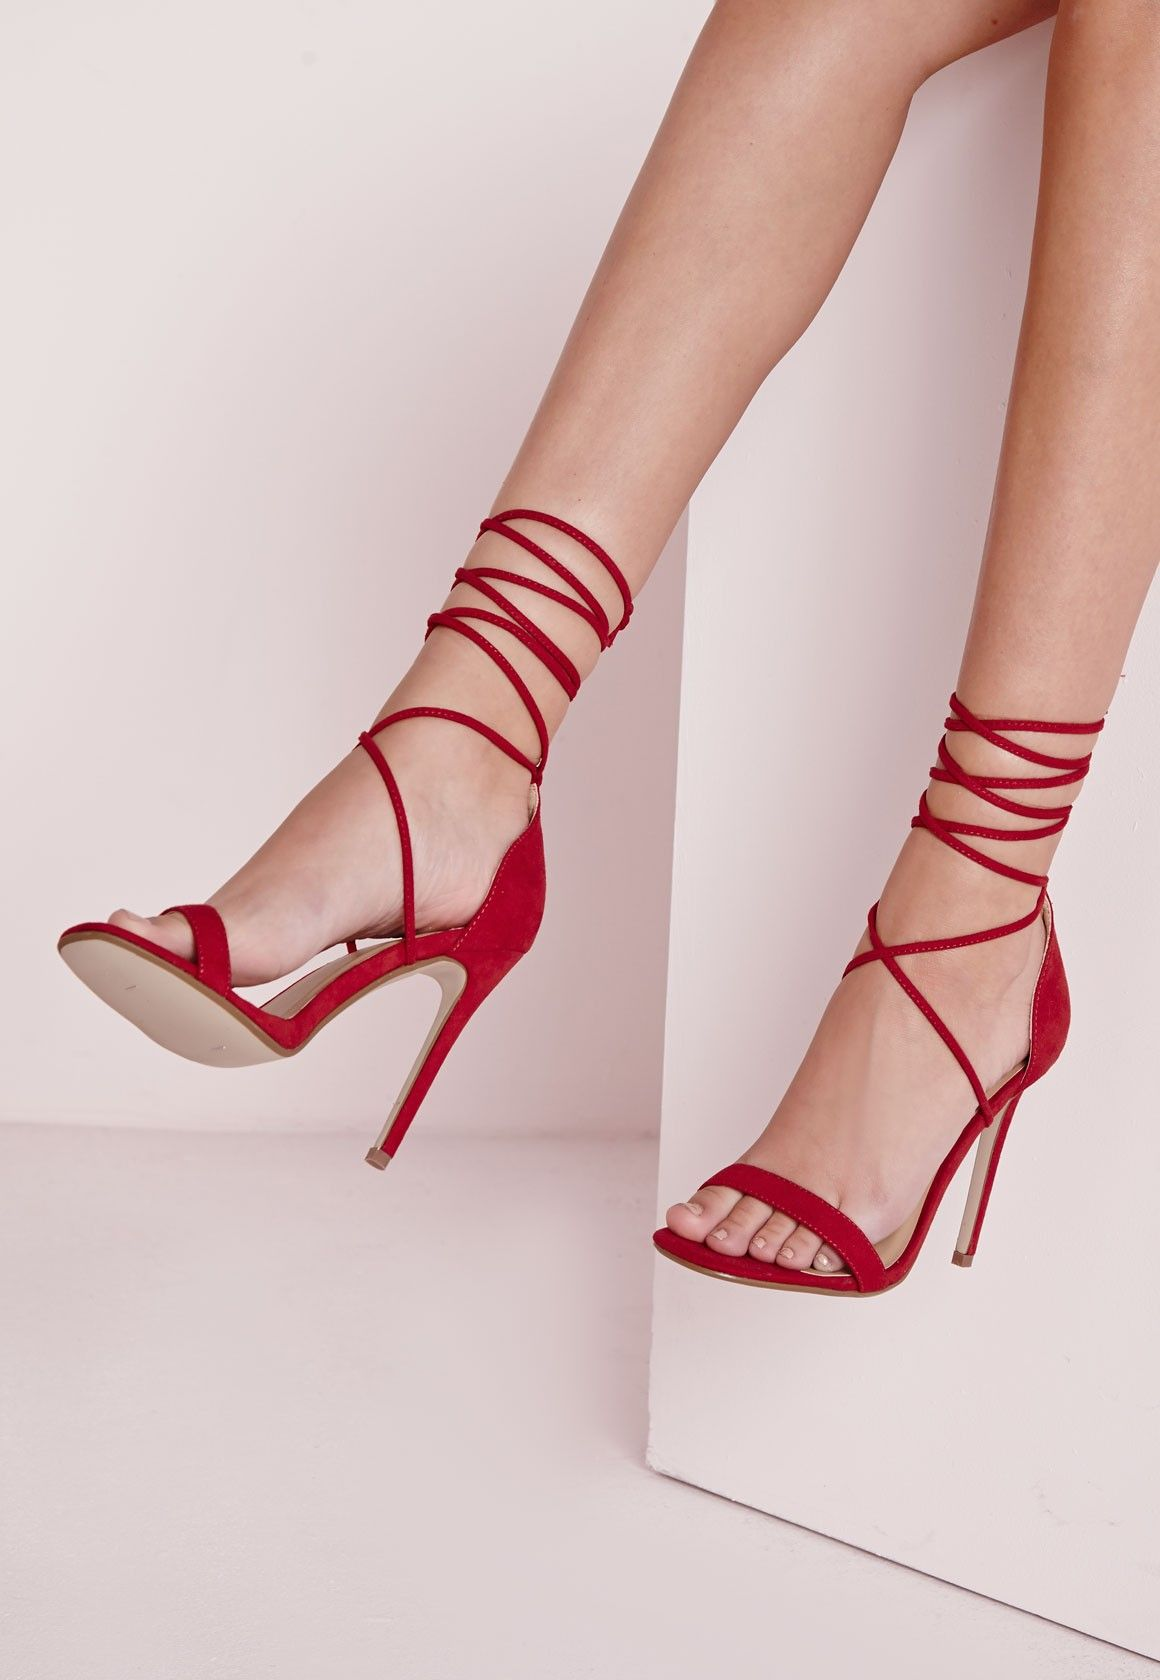 c5083c50ce60 ... Heel Shoes with Amazing Bowties. Missguided - Lace Up Barely There  Heeled Sandals Red